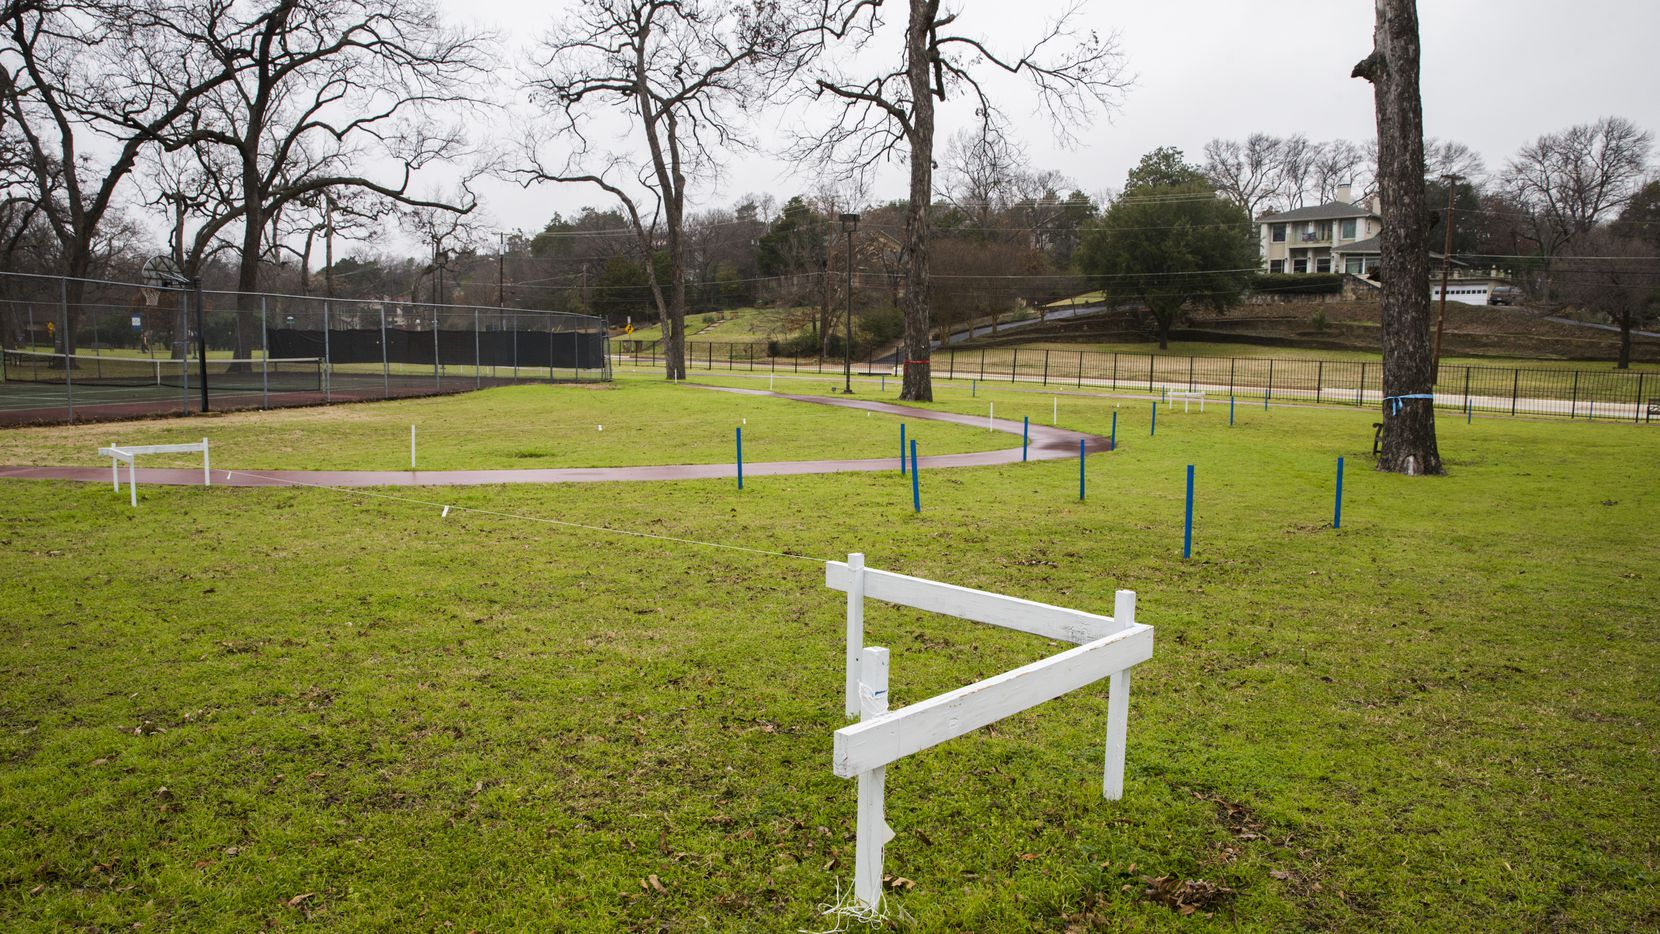 A lawsuit was filed Monday on behalf of East Kessler Park resident Katherine Homan that seeks to invalidate a Feb. 13 City Council vote that cleared the way to build a new Folsom Fitness Center in the pecan grove on Methodist Dallas Medical Center's campus.